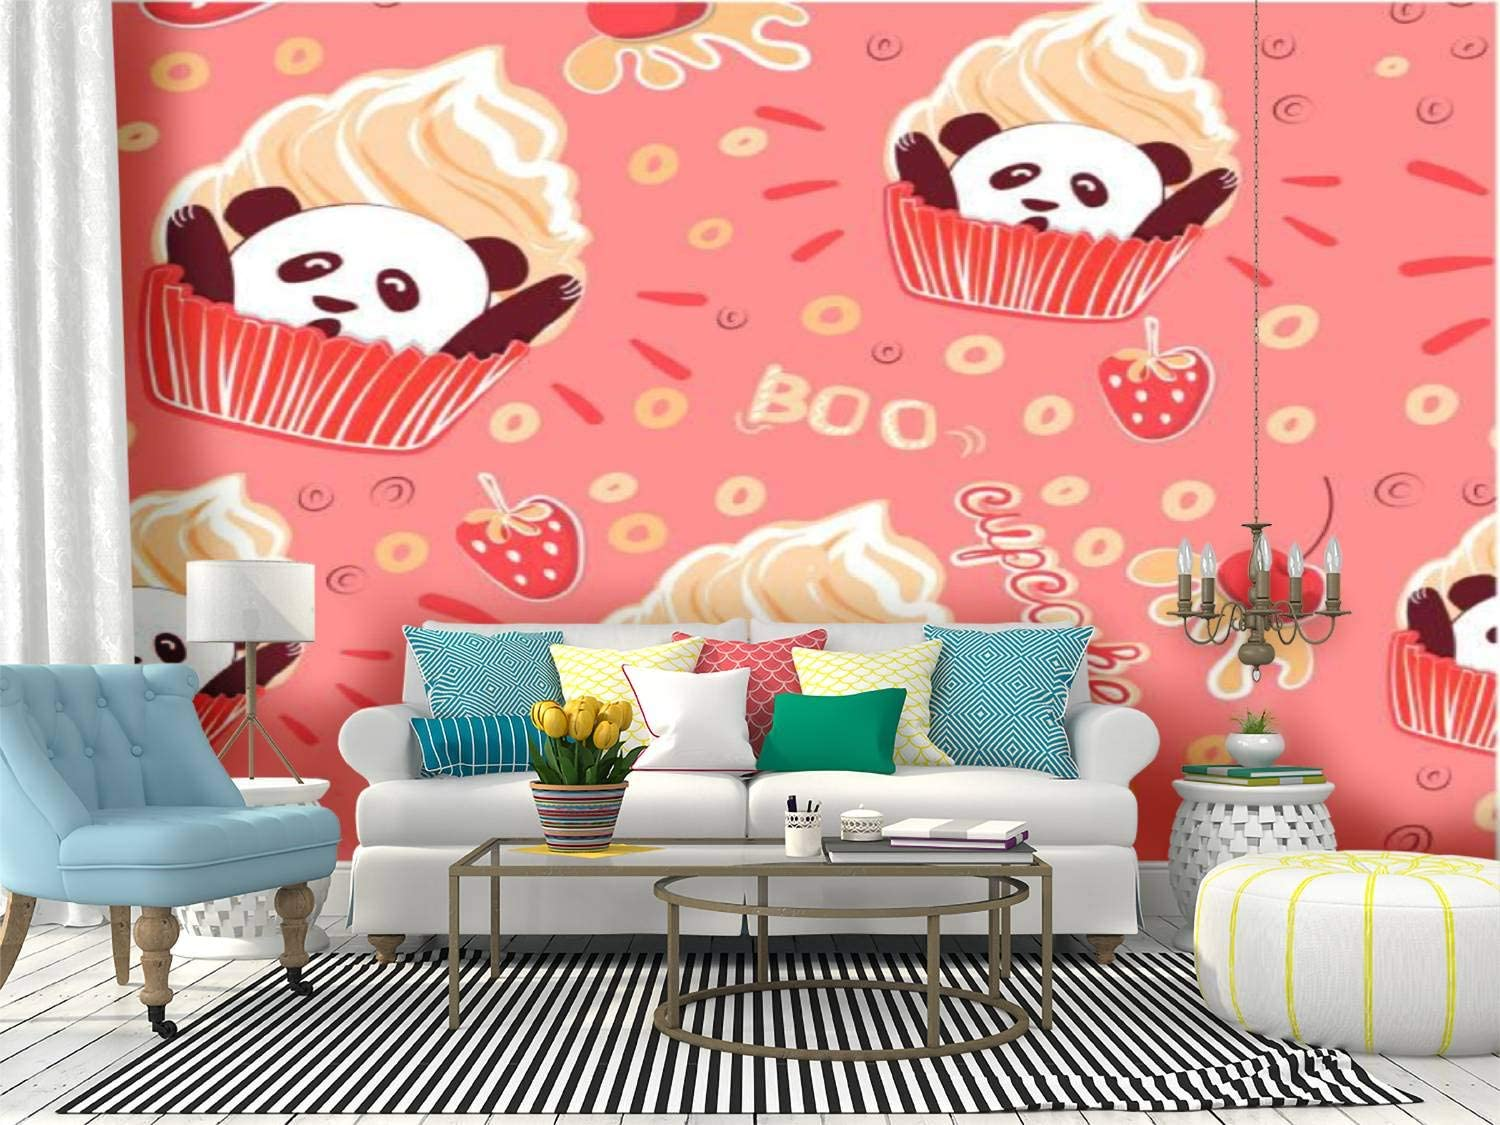 RECETHROWS Wall Mural Pattern for Underwear New sales Stock Baby Illustrat Luxury goods